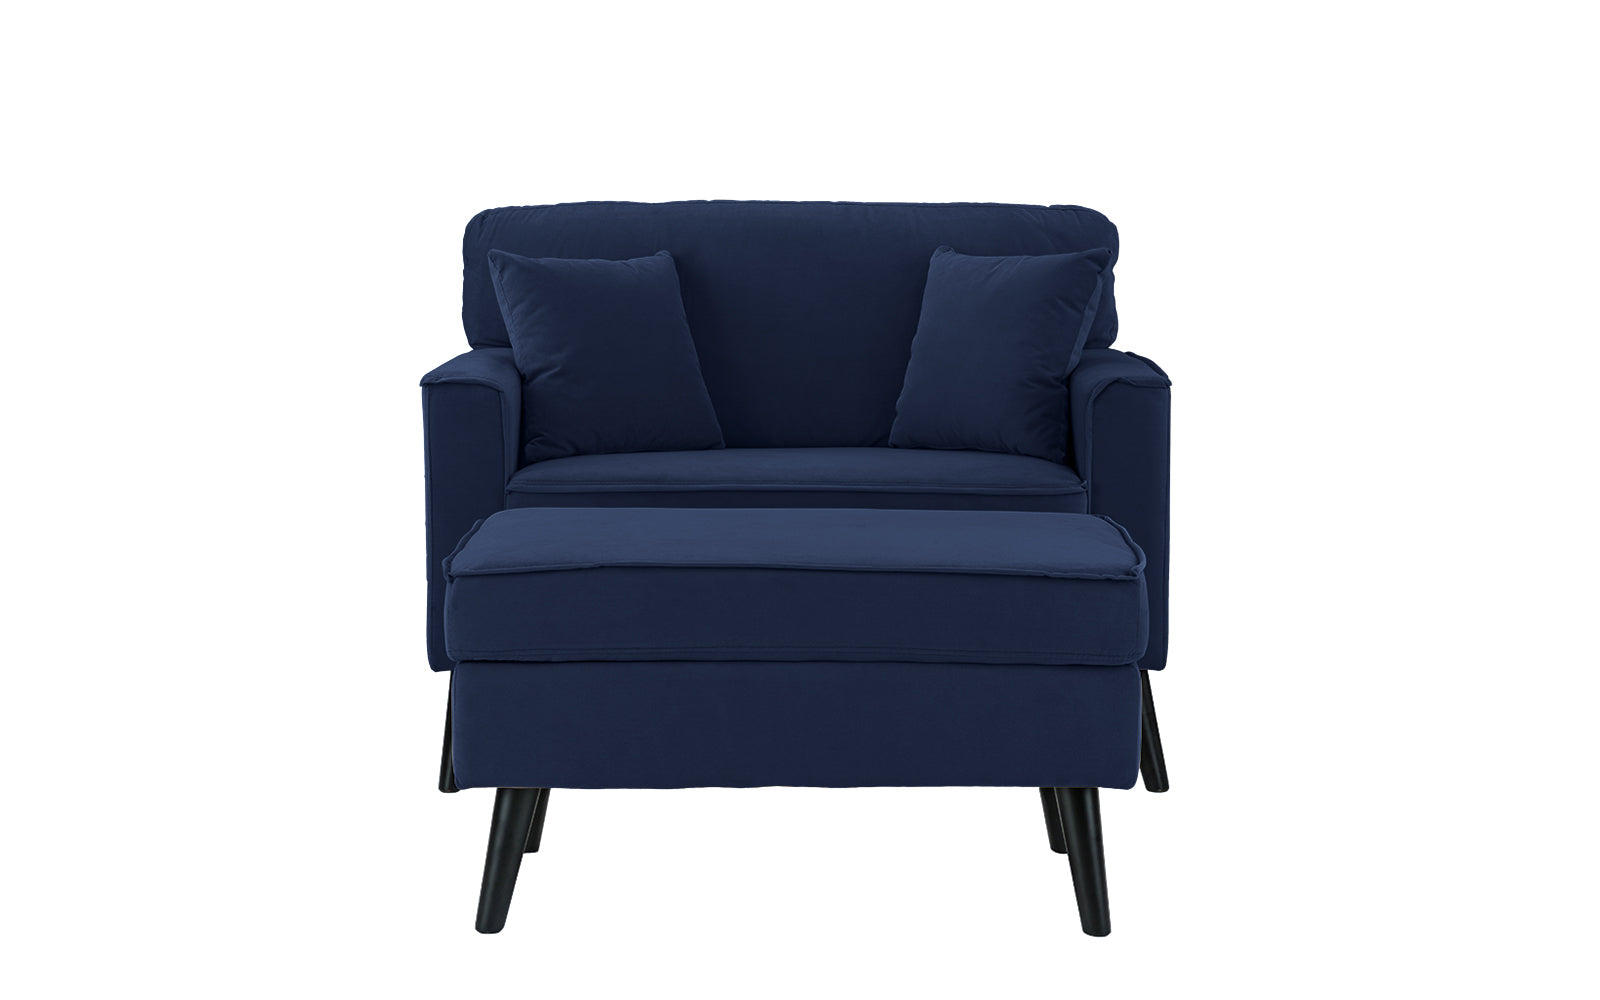 Wide Chair Footrest Image